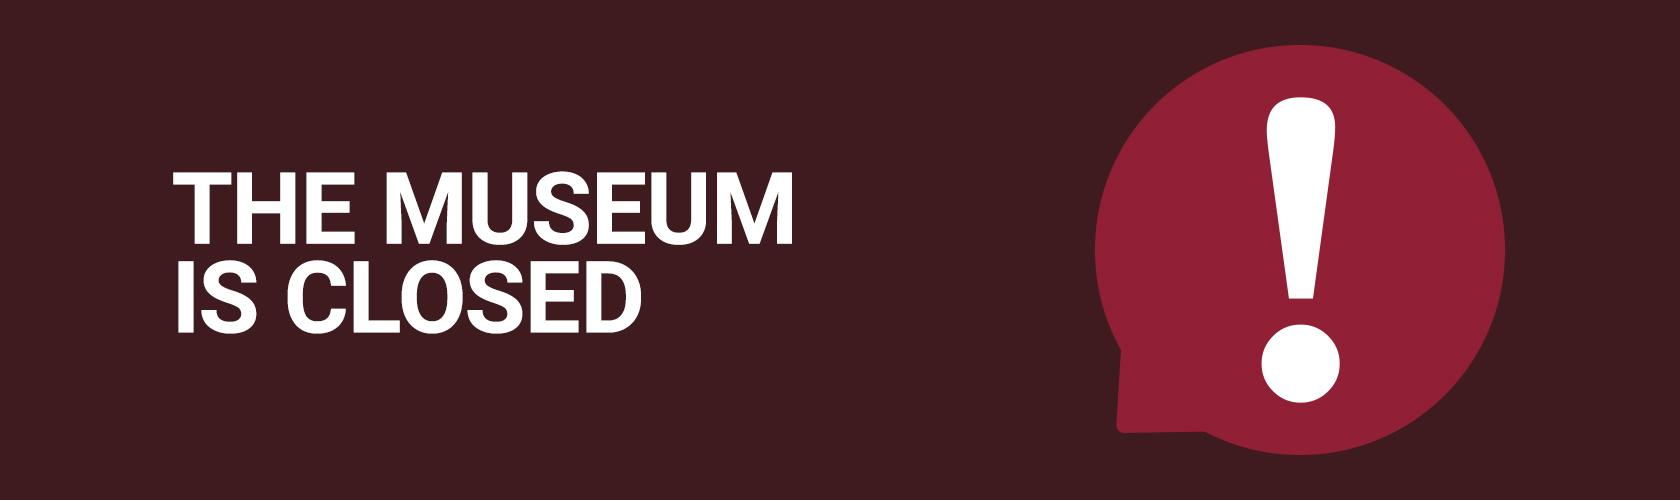 museum-closed-slider